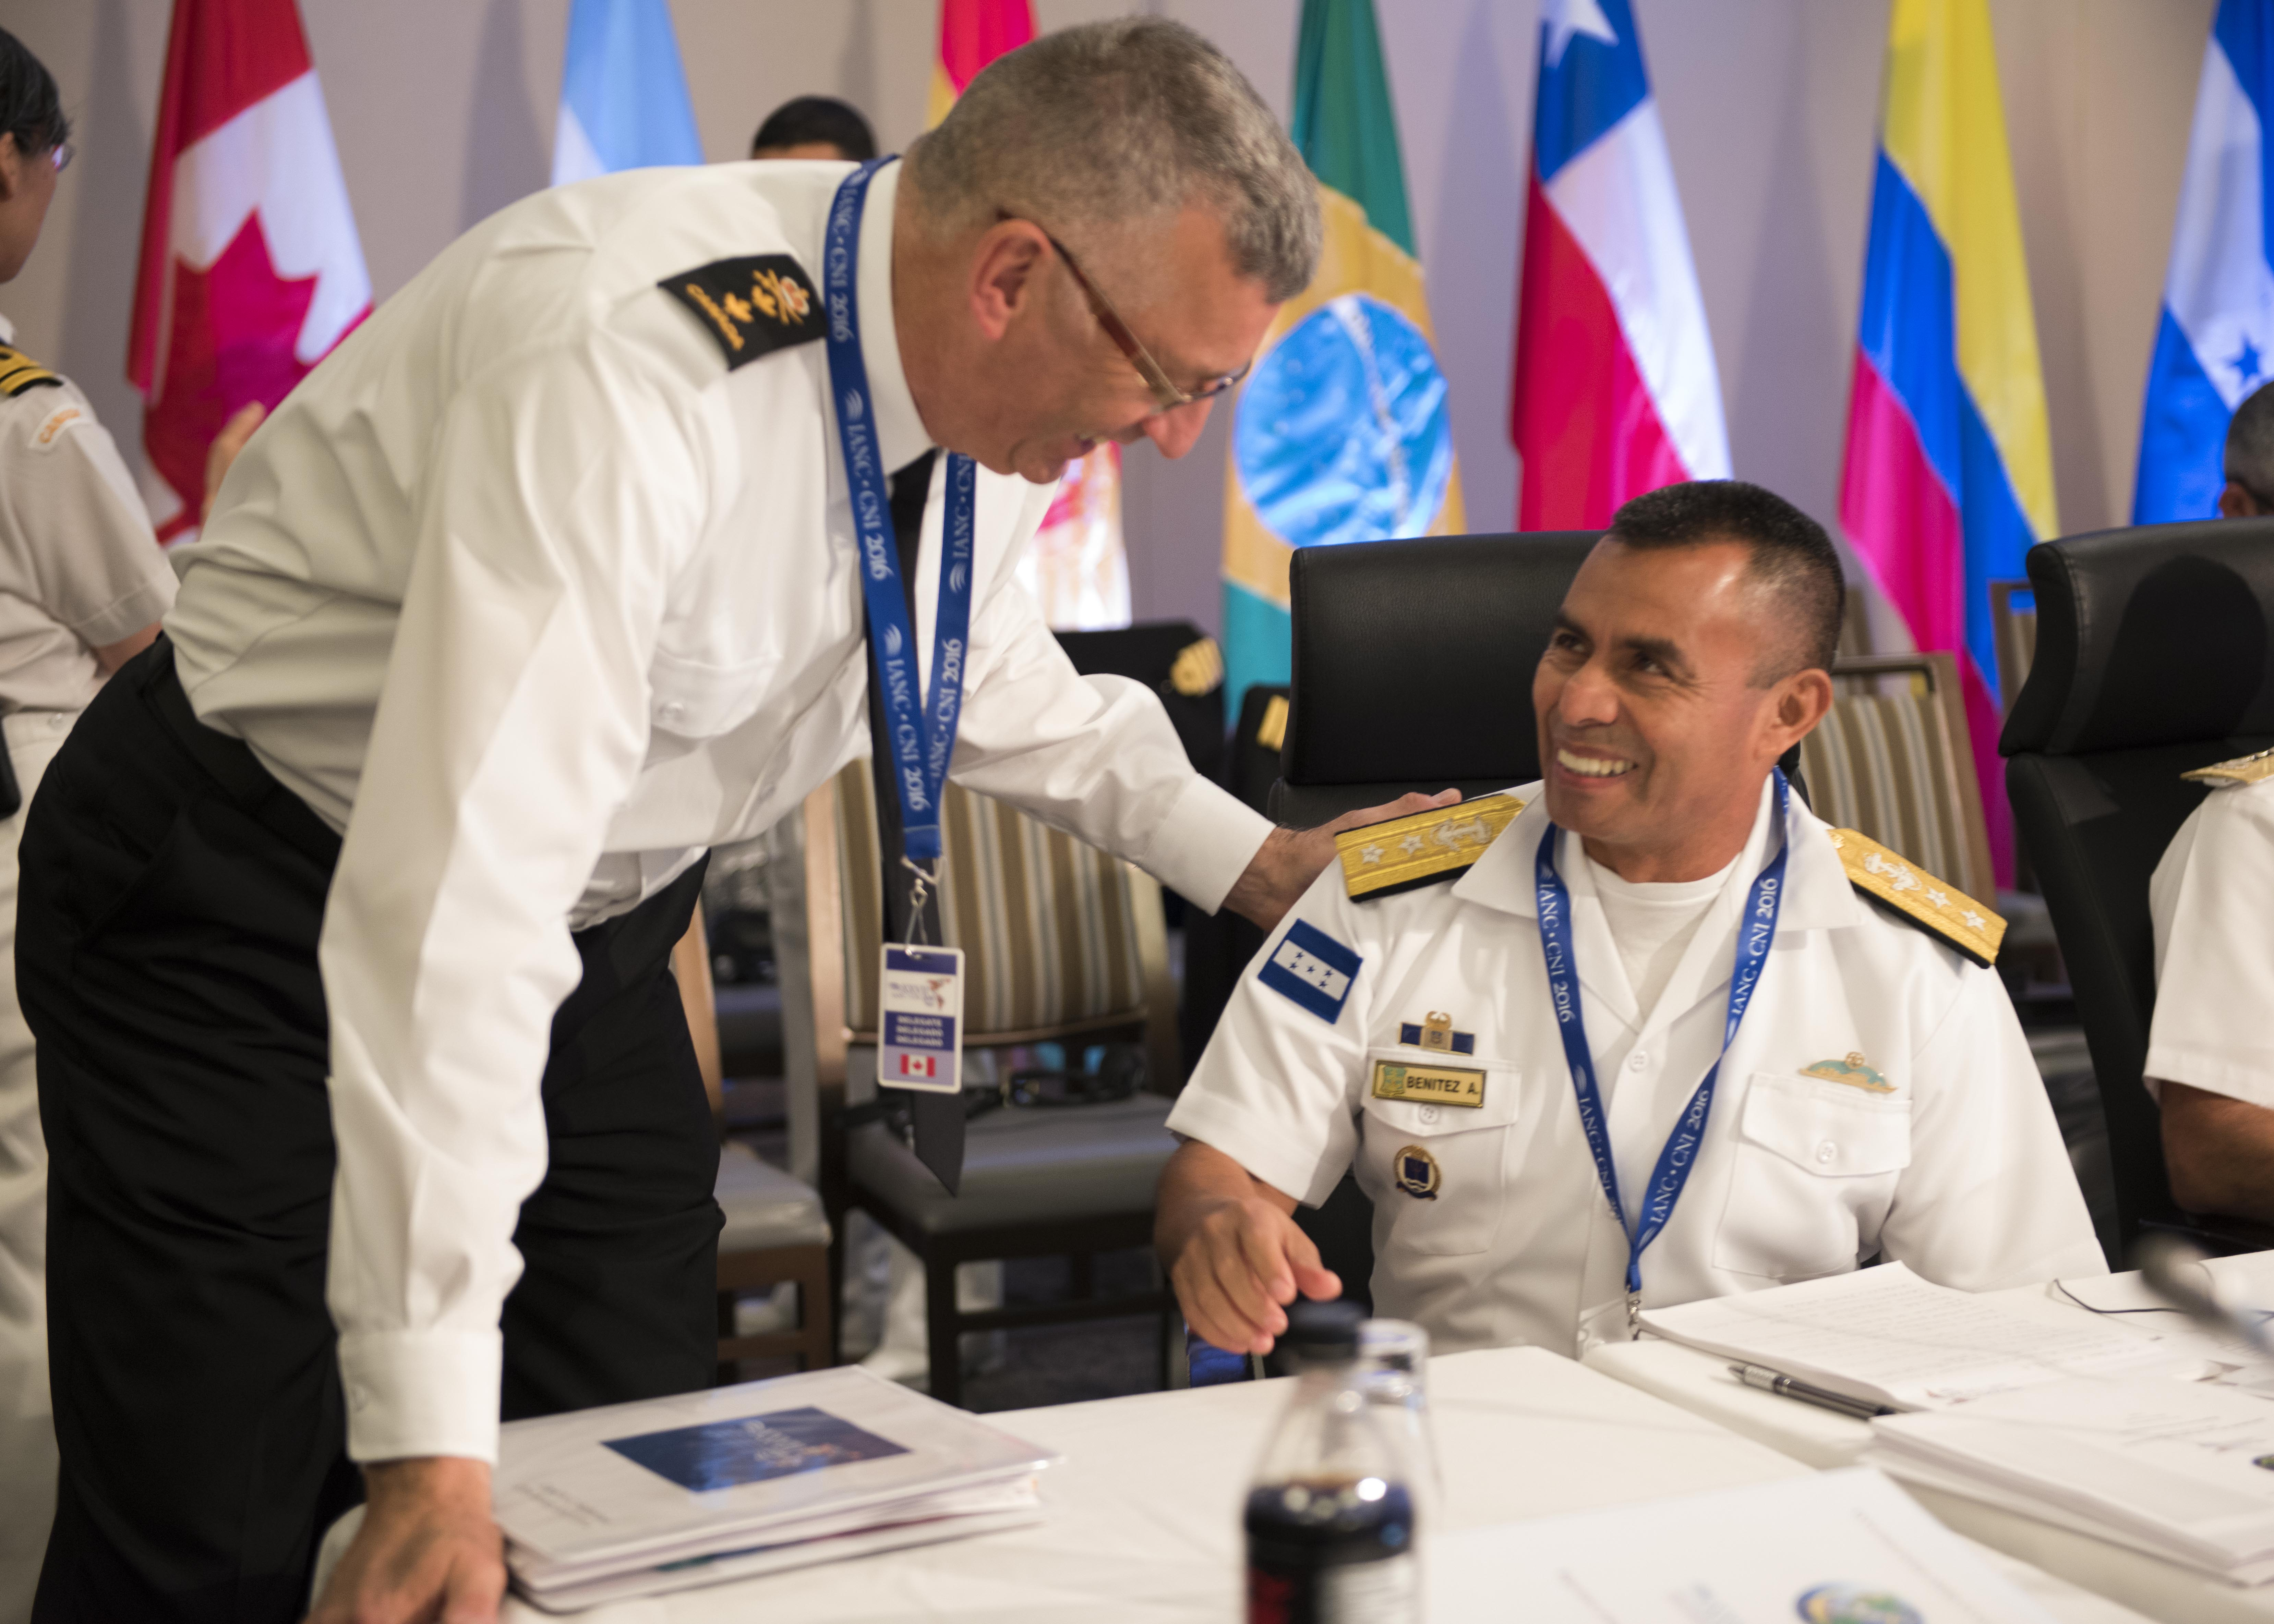 Canadian Rear-Admiral John F. Newton (left), Commander Joint Task Force Atlantic and Maritime Forces Atlantic, and Contralmirante Don Jesús Humberto Benitez (right), Commander Honduras Naval Force, have a discussion at the Inter-American Naval Conference in Halifax on June 14, 2016.